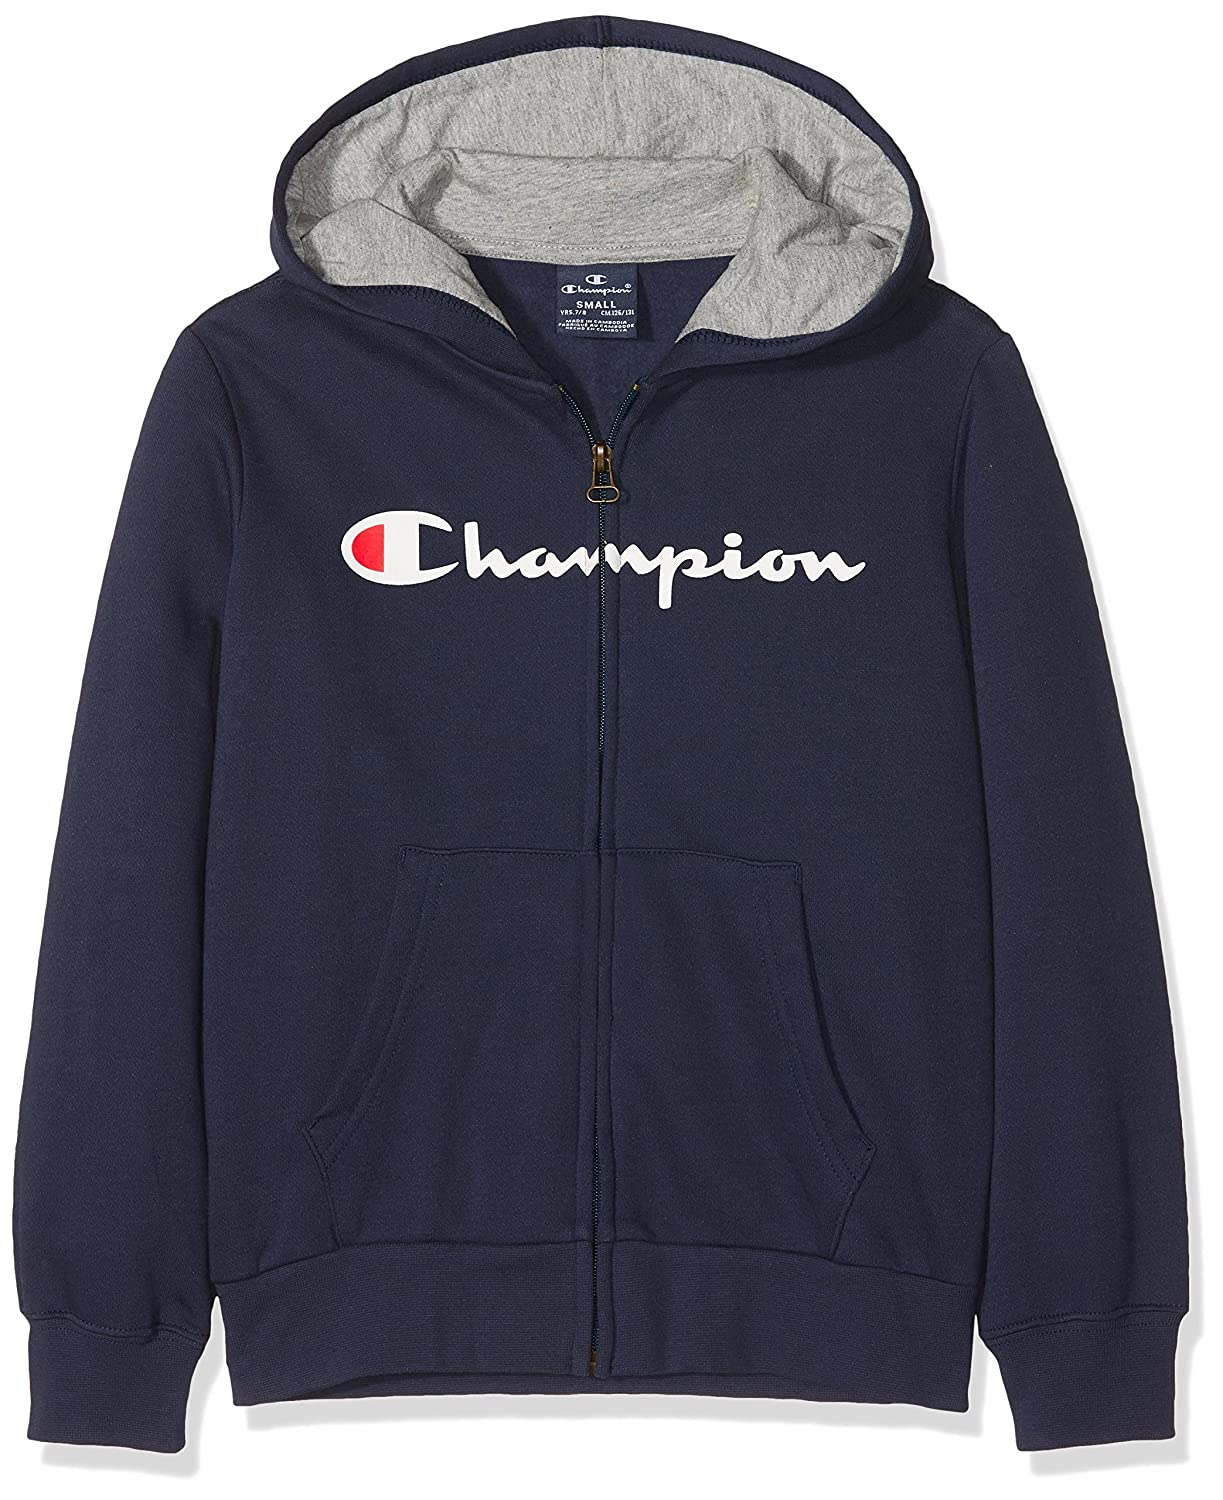 Champion Jungen Kapuzenpullover Hooded Full Zip Sweatshirt 304839